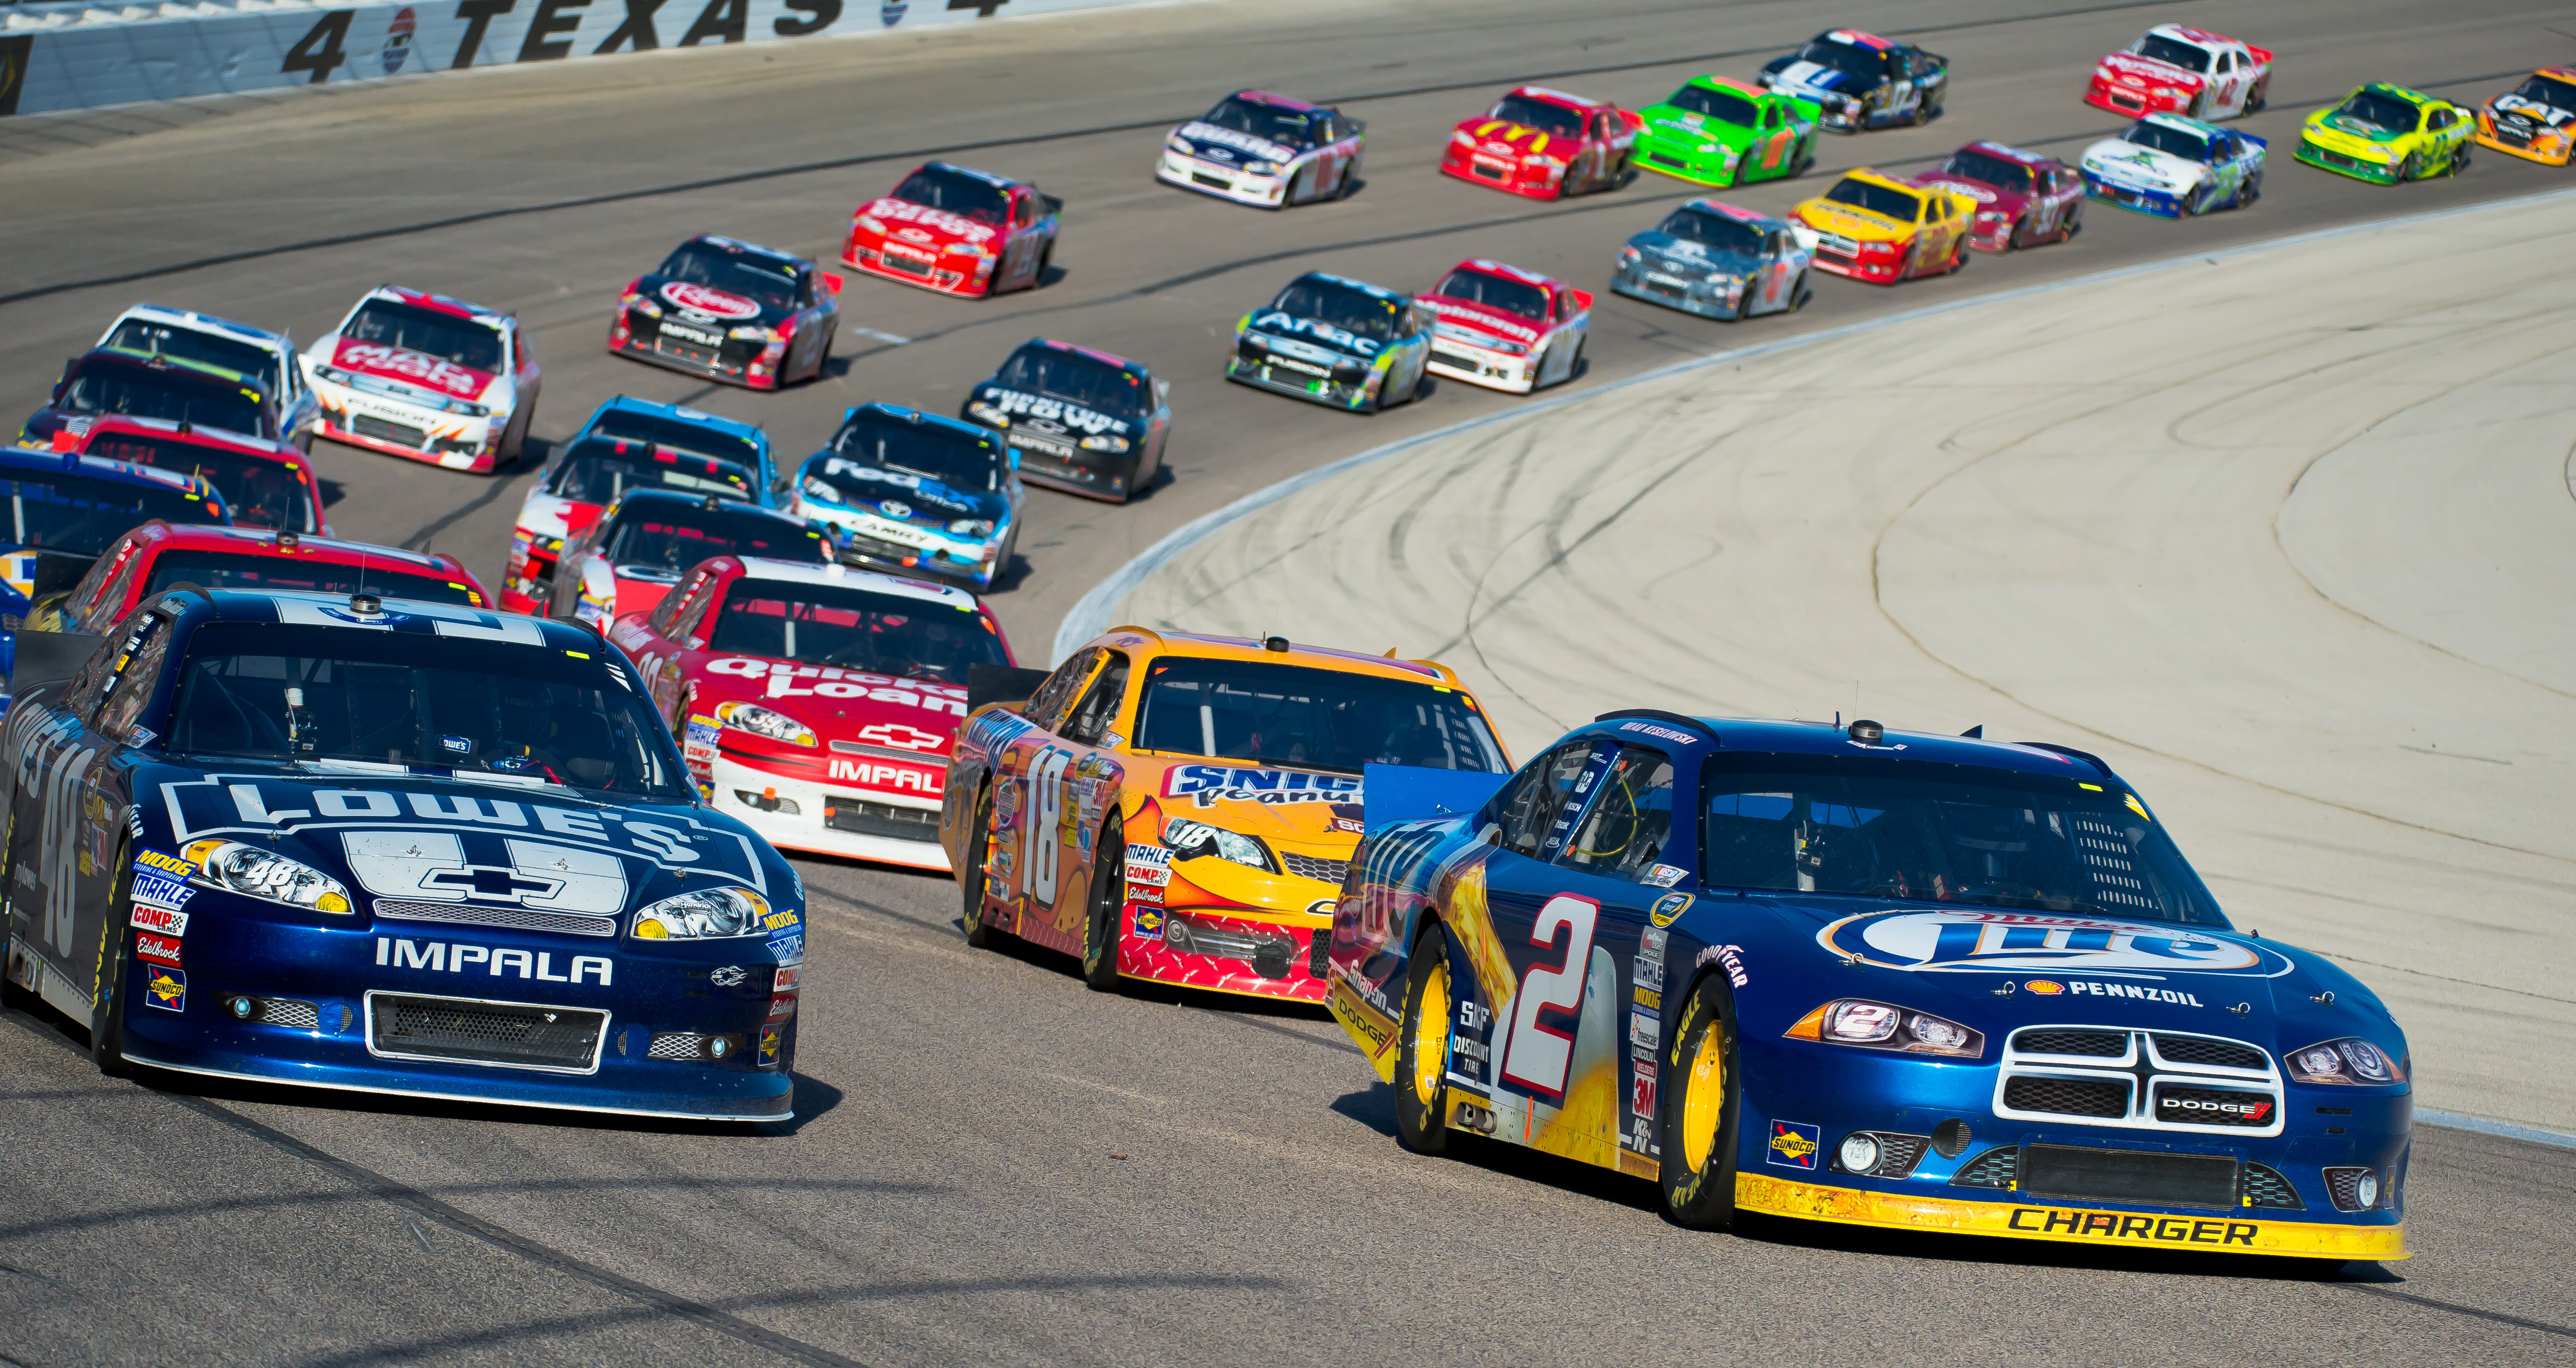 Two-way Radios used in NASCAR | Highland Wireless Services